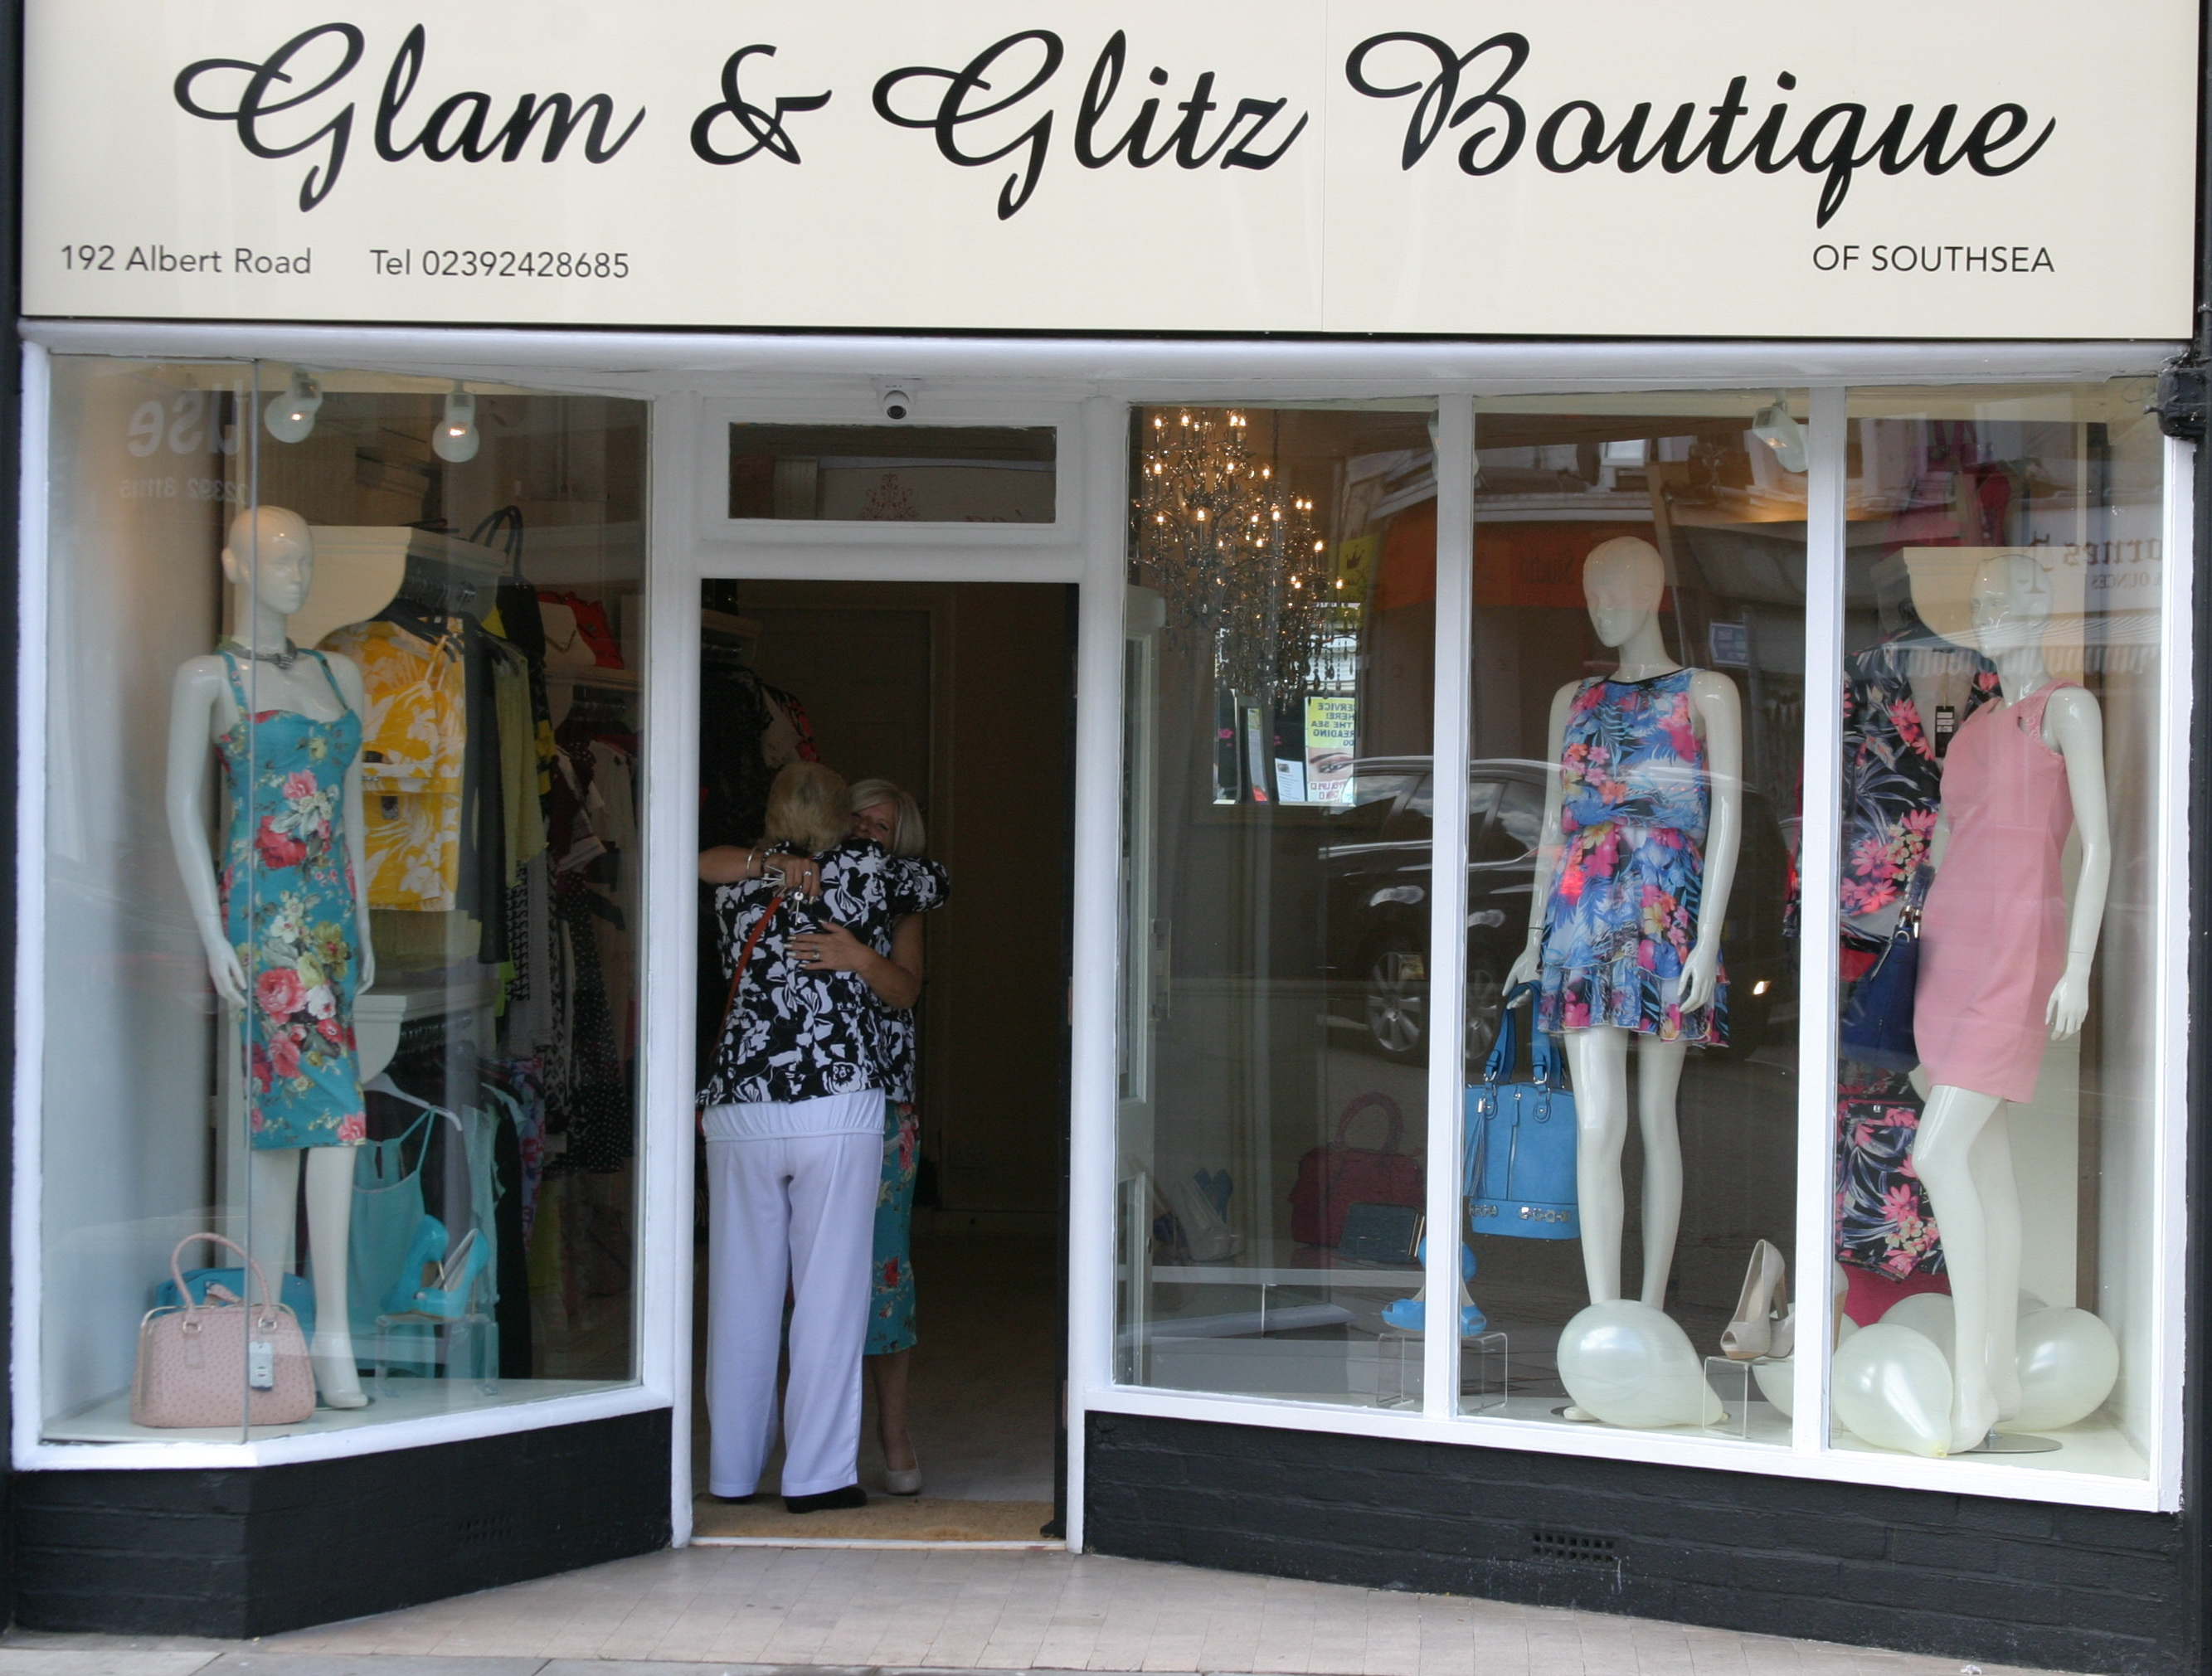 Glam & Glitz Boutique of Southsea A unique Ladies Boutique in the popular location of Albert Road. Offering a selection of high fashion and classic ladies wear in sizes 8 to 26.